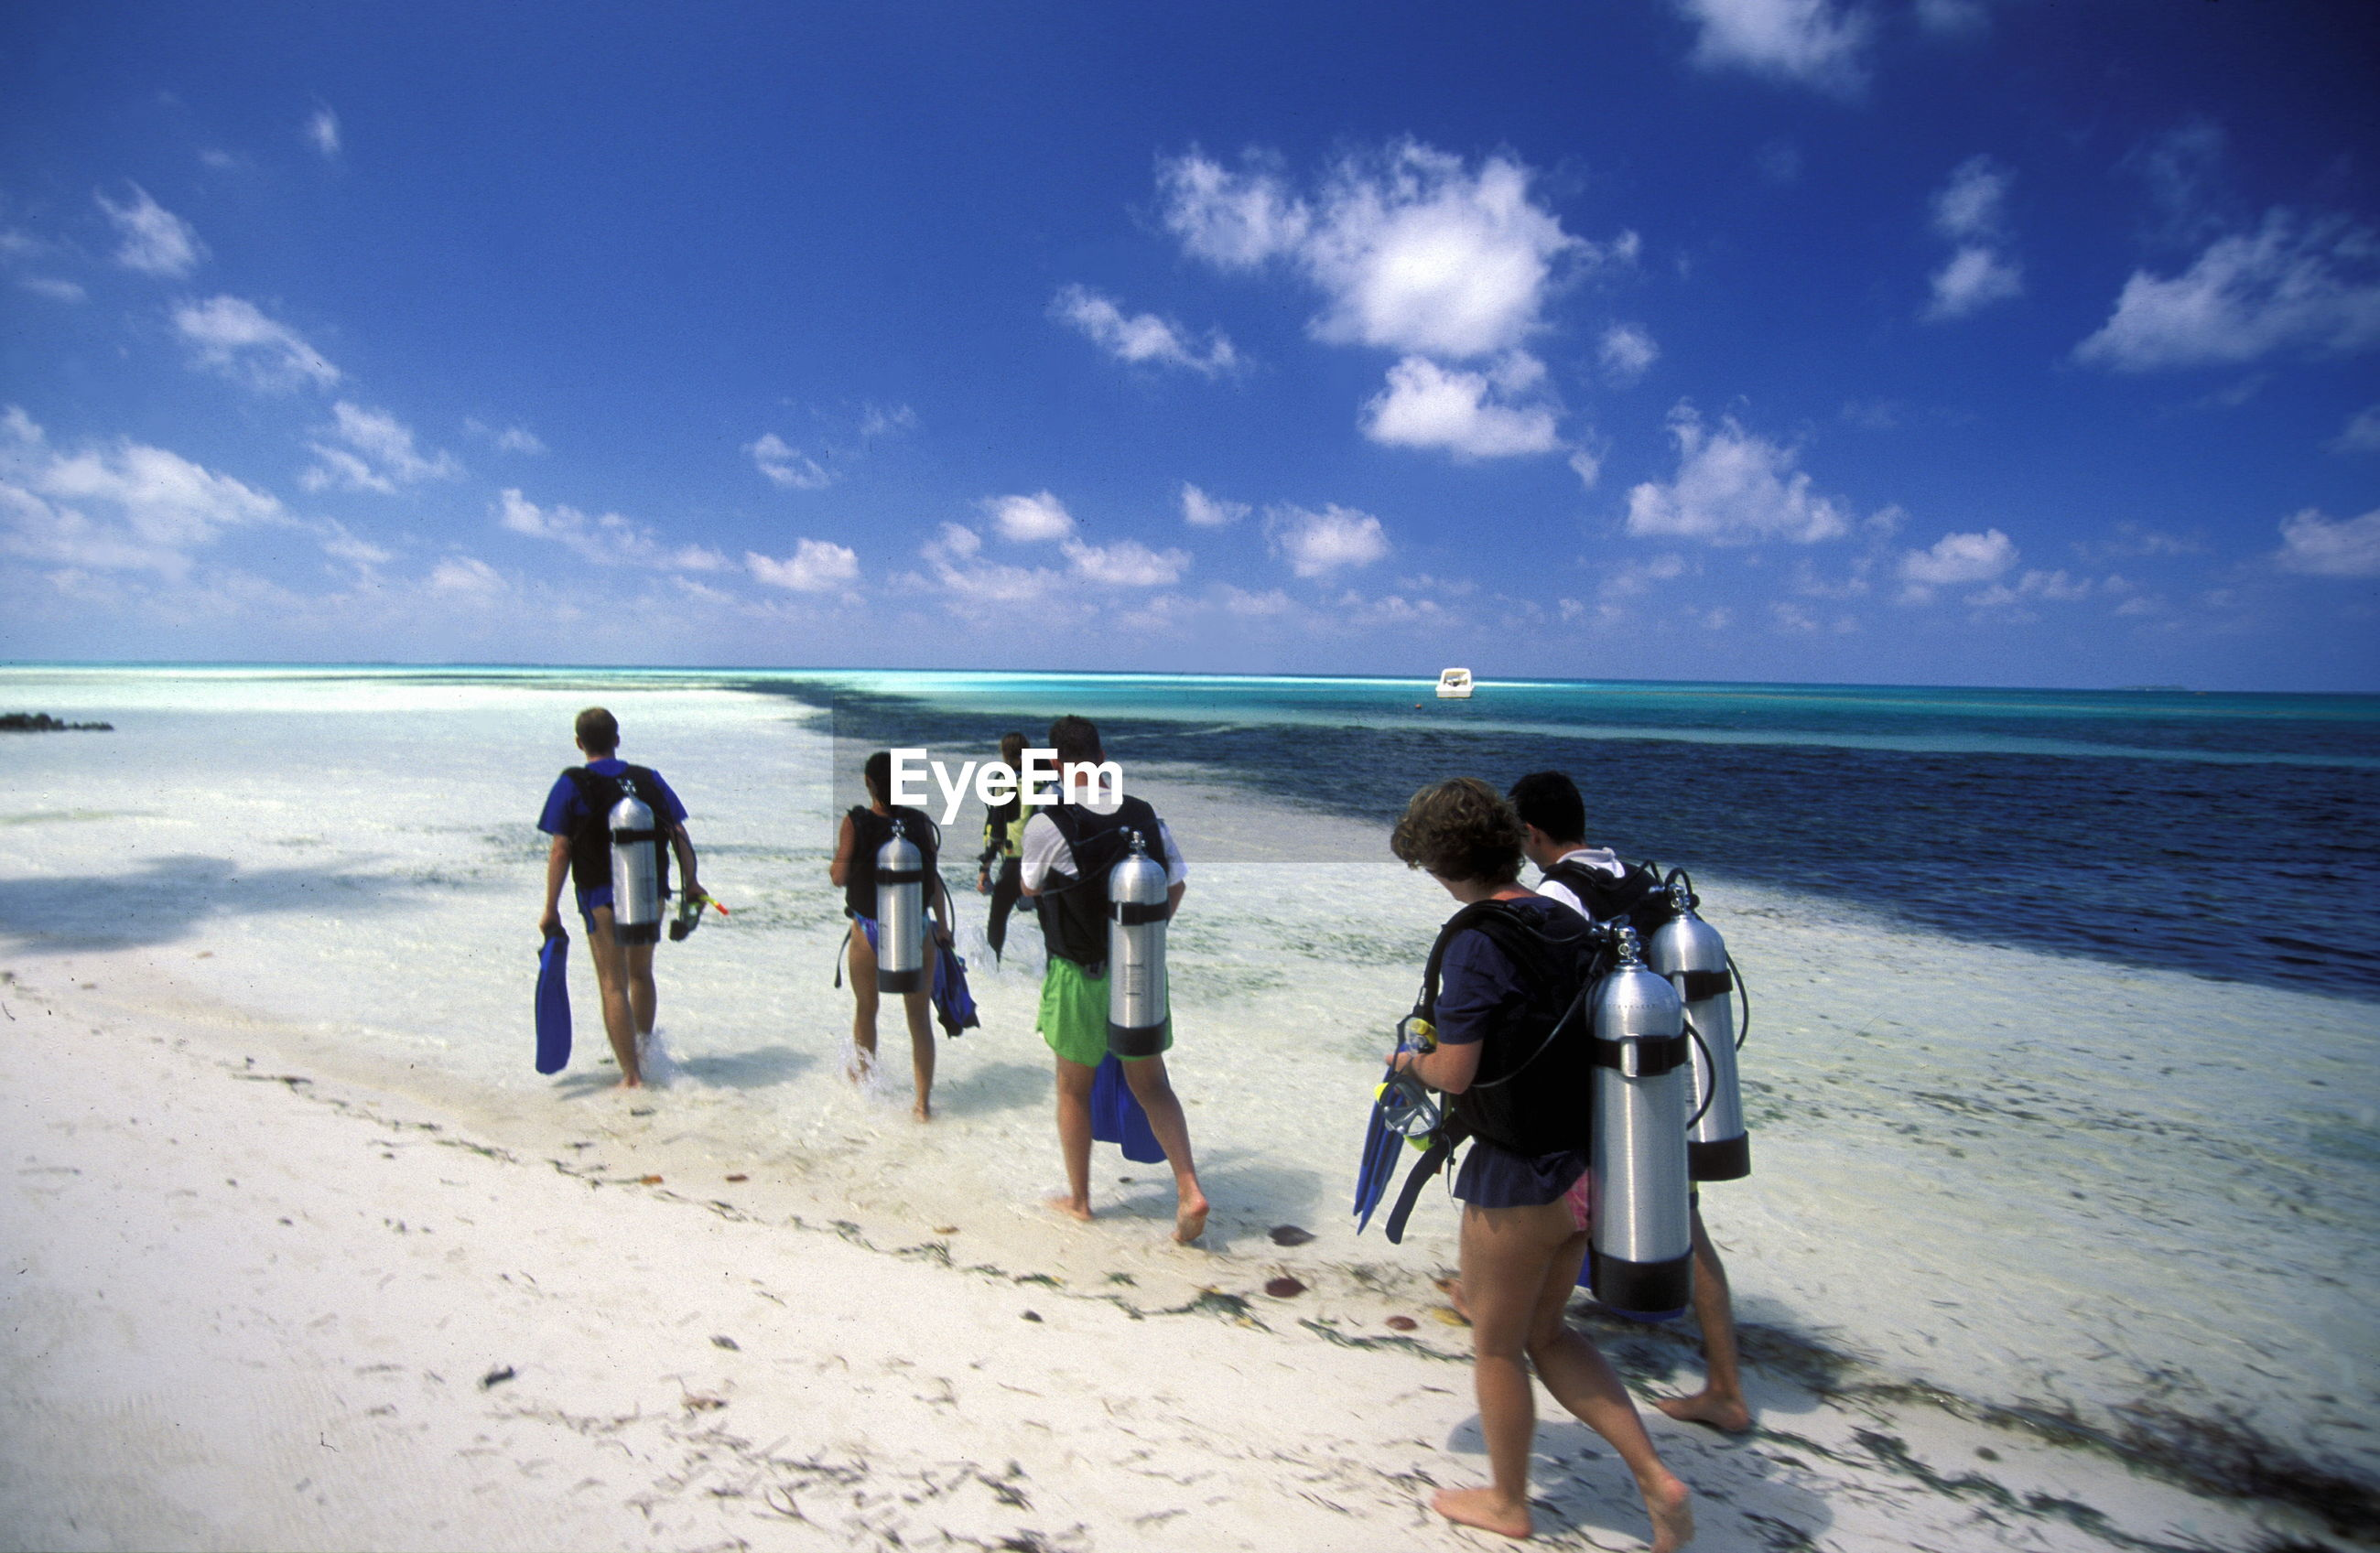 Rear view of scuba divers wearing aqualung walking on sand at beach against sky